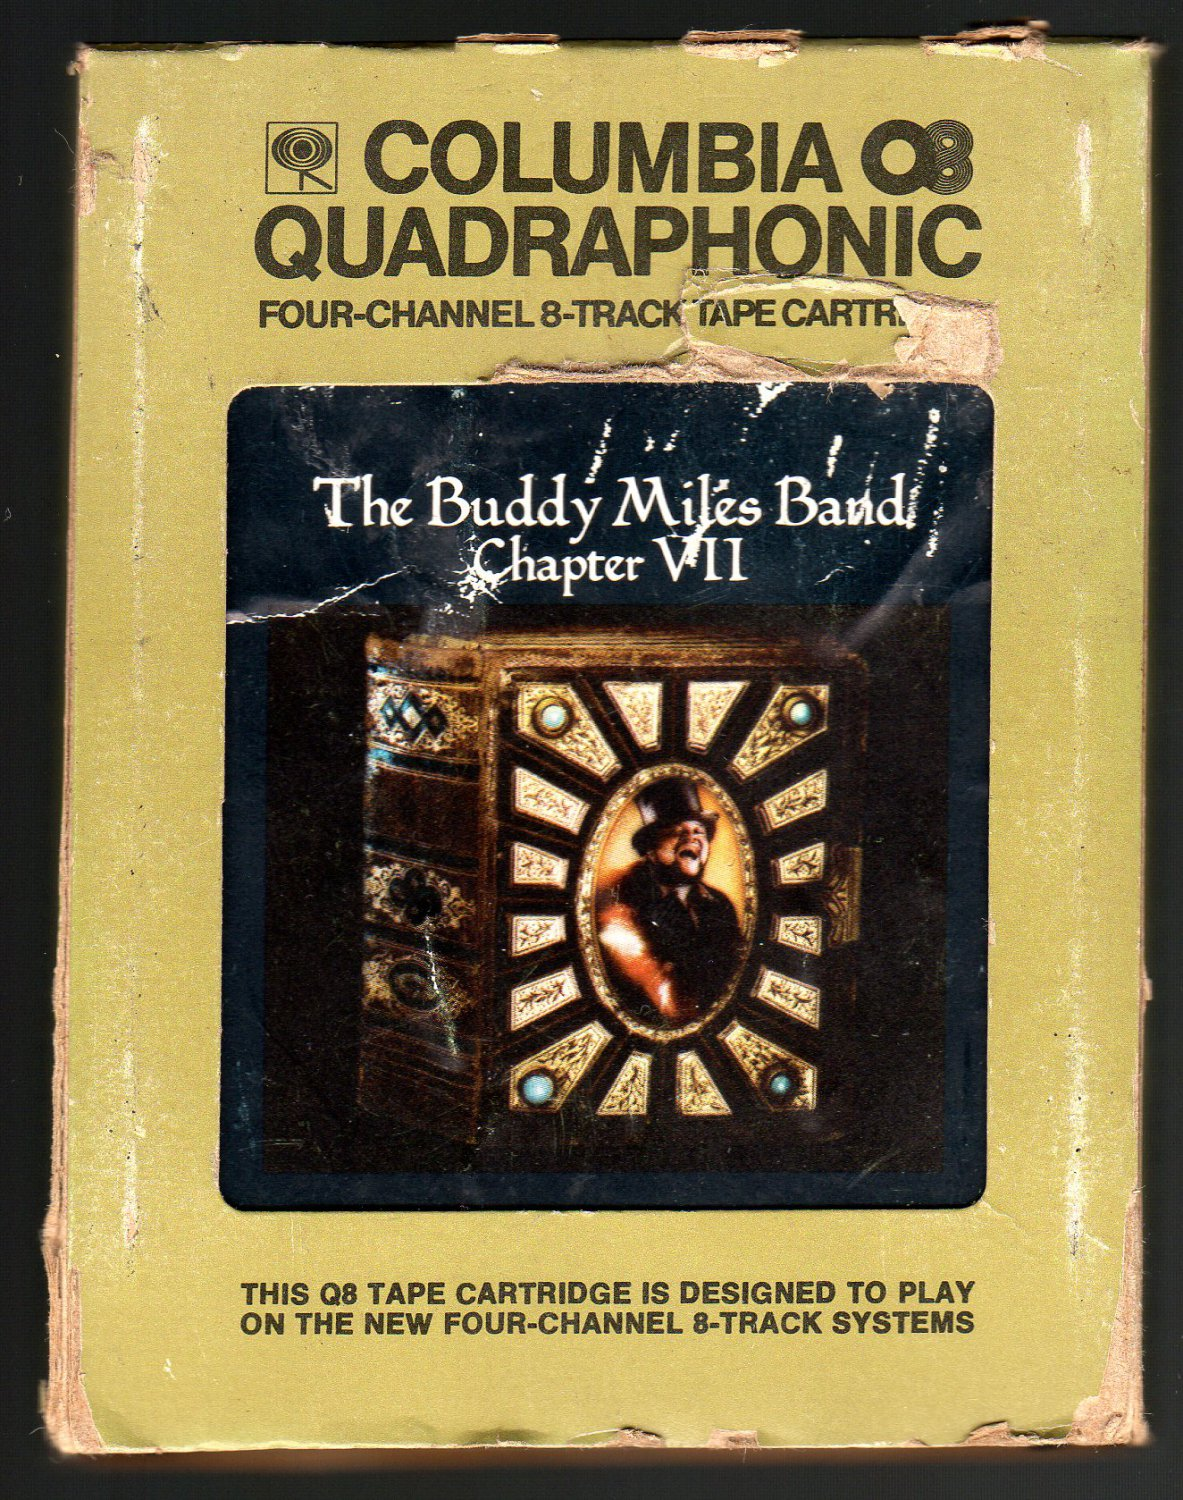 The Buddy Milles Band - Chapter VII 1973 CBS Quadraphonic AC1 8-TRACK TAPE